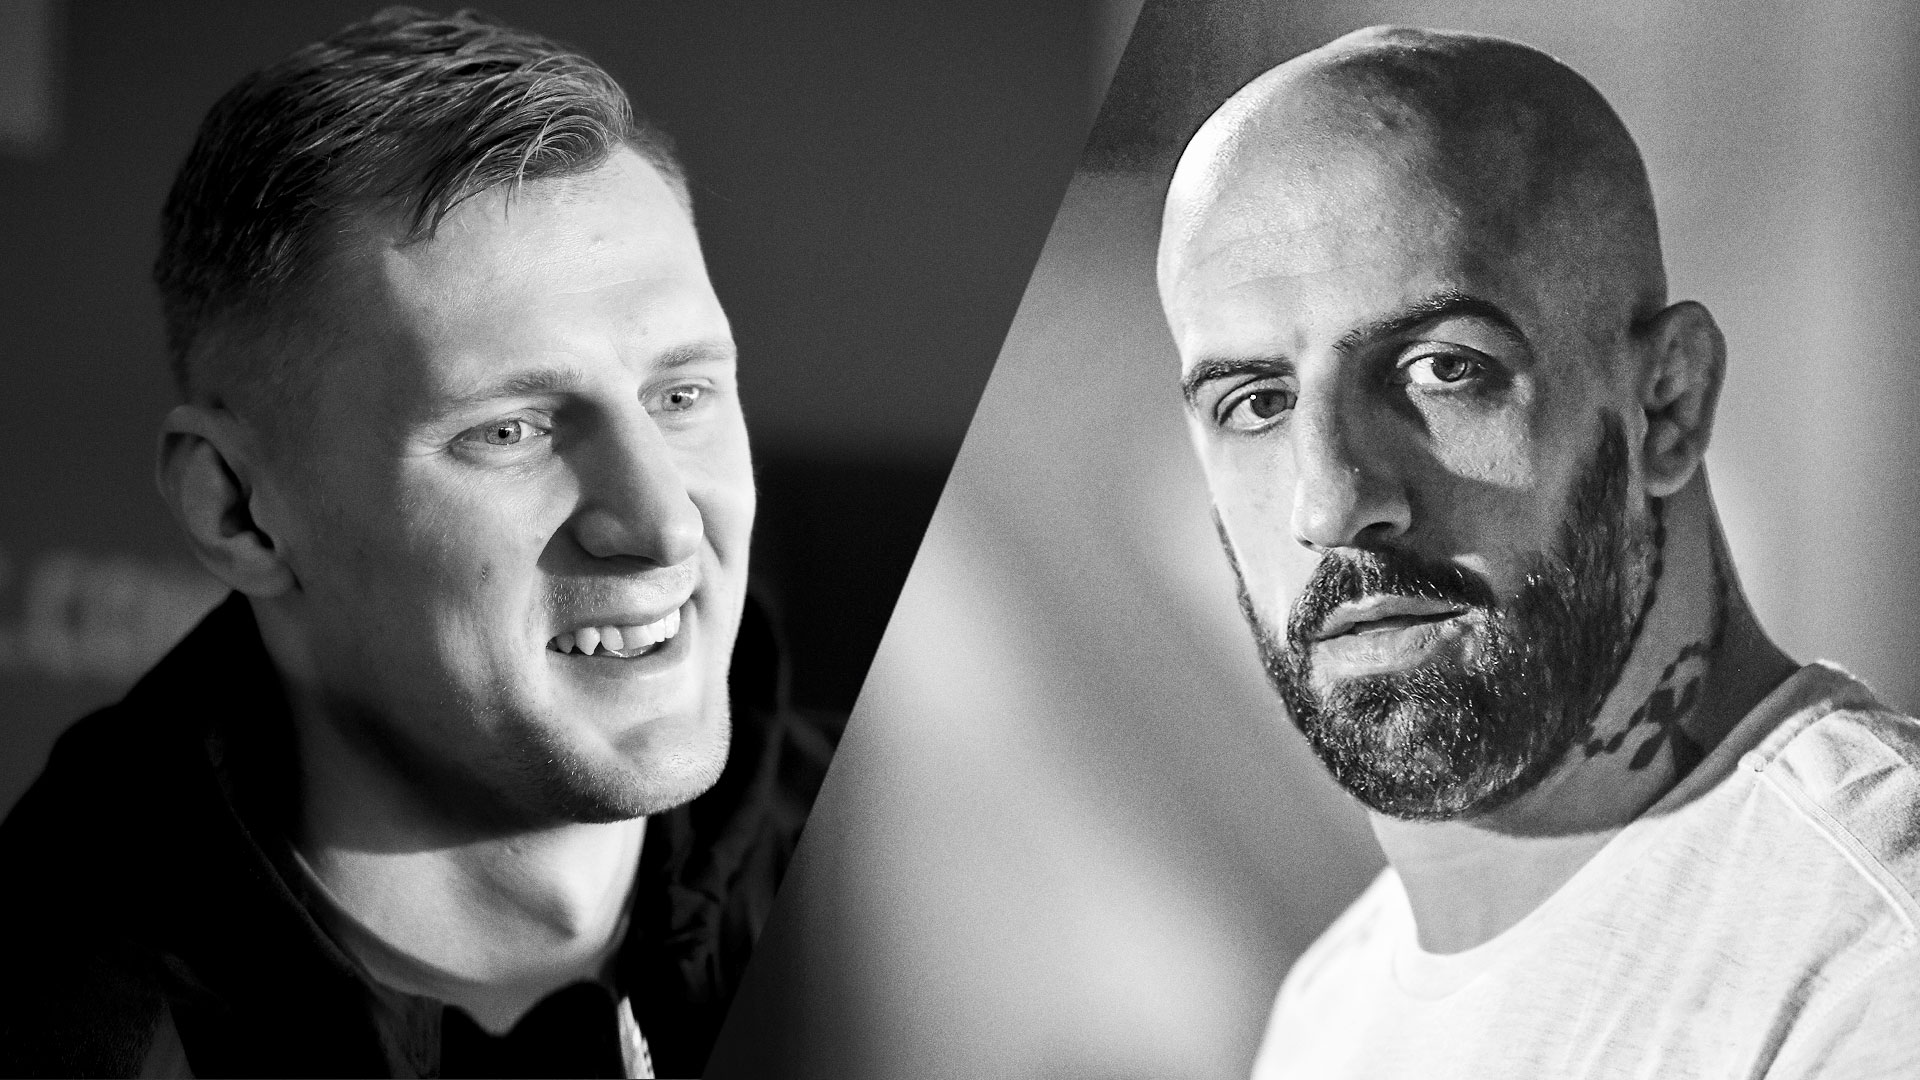 UFC Unfiltered 504 featuring UFC heavyweight Alexander Volkov and light heavyweight Danilo Marques ahead of their performances at UFC Fight Night: Gane vs Volkov on June 26, 2021.